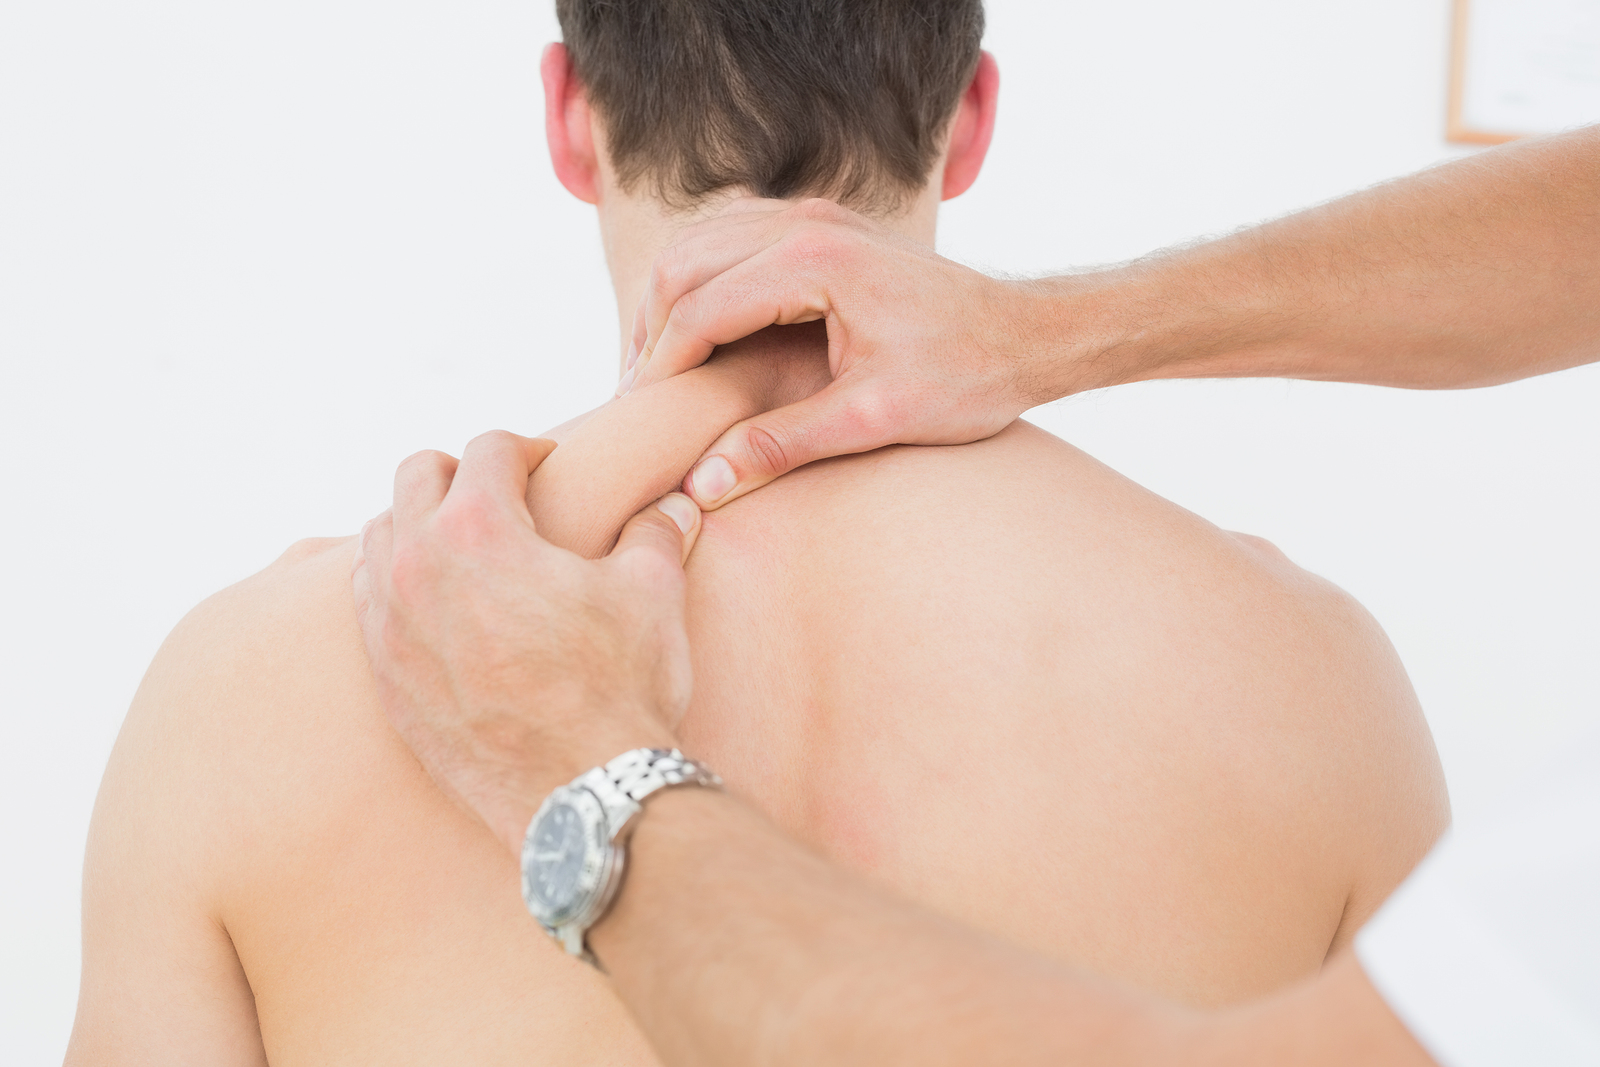 man receiving fibromyalgia treatment